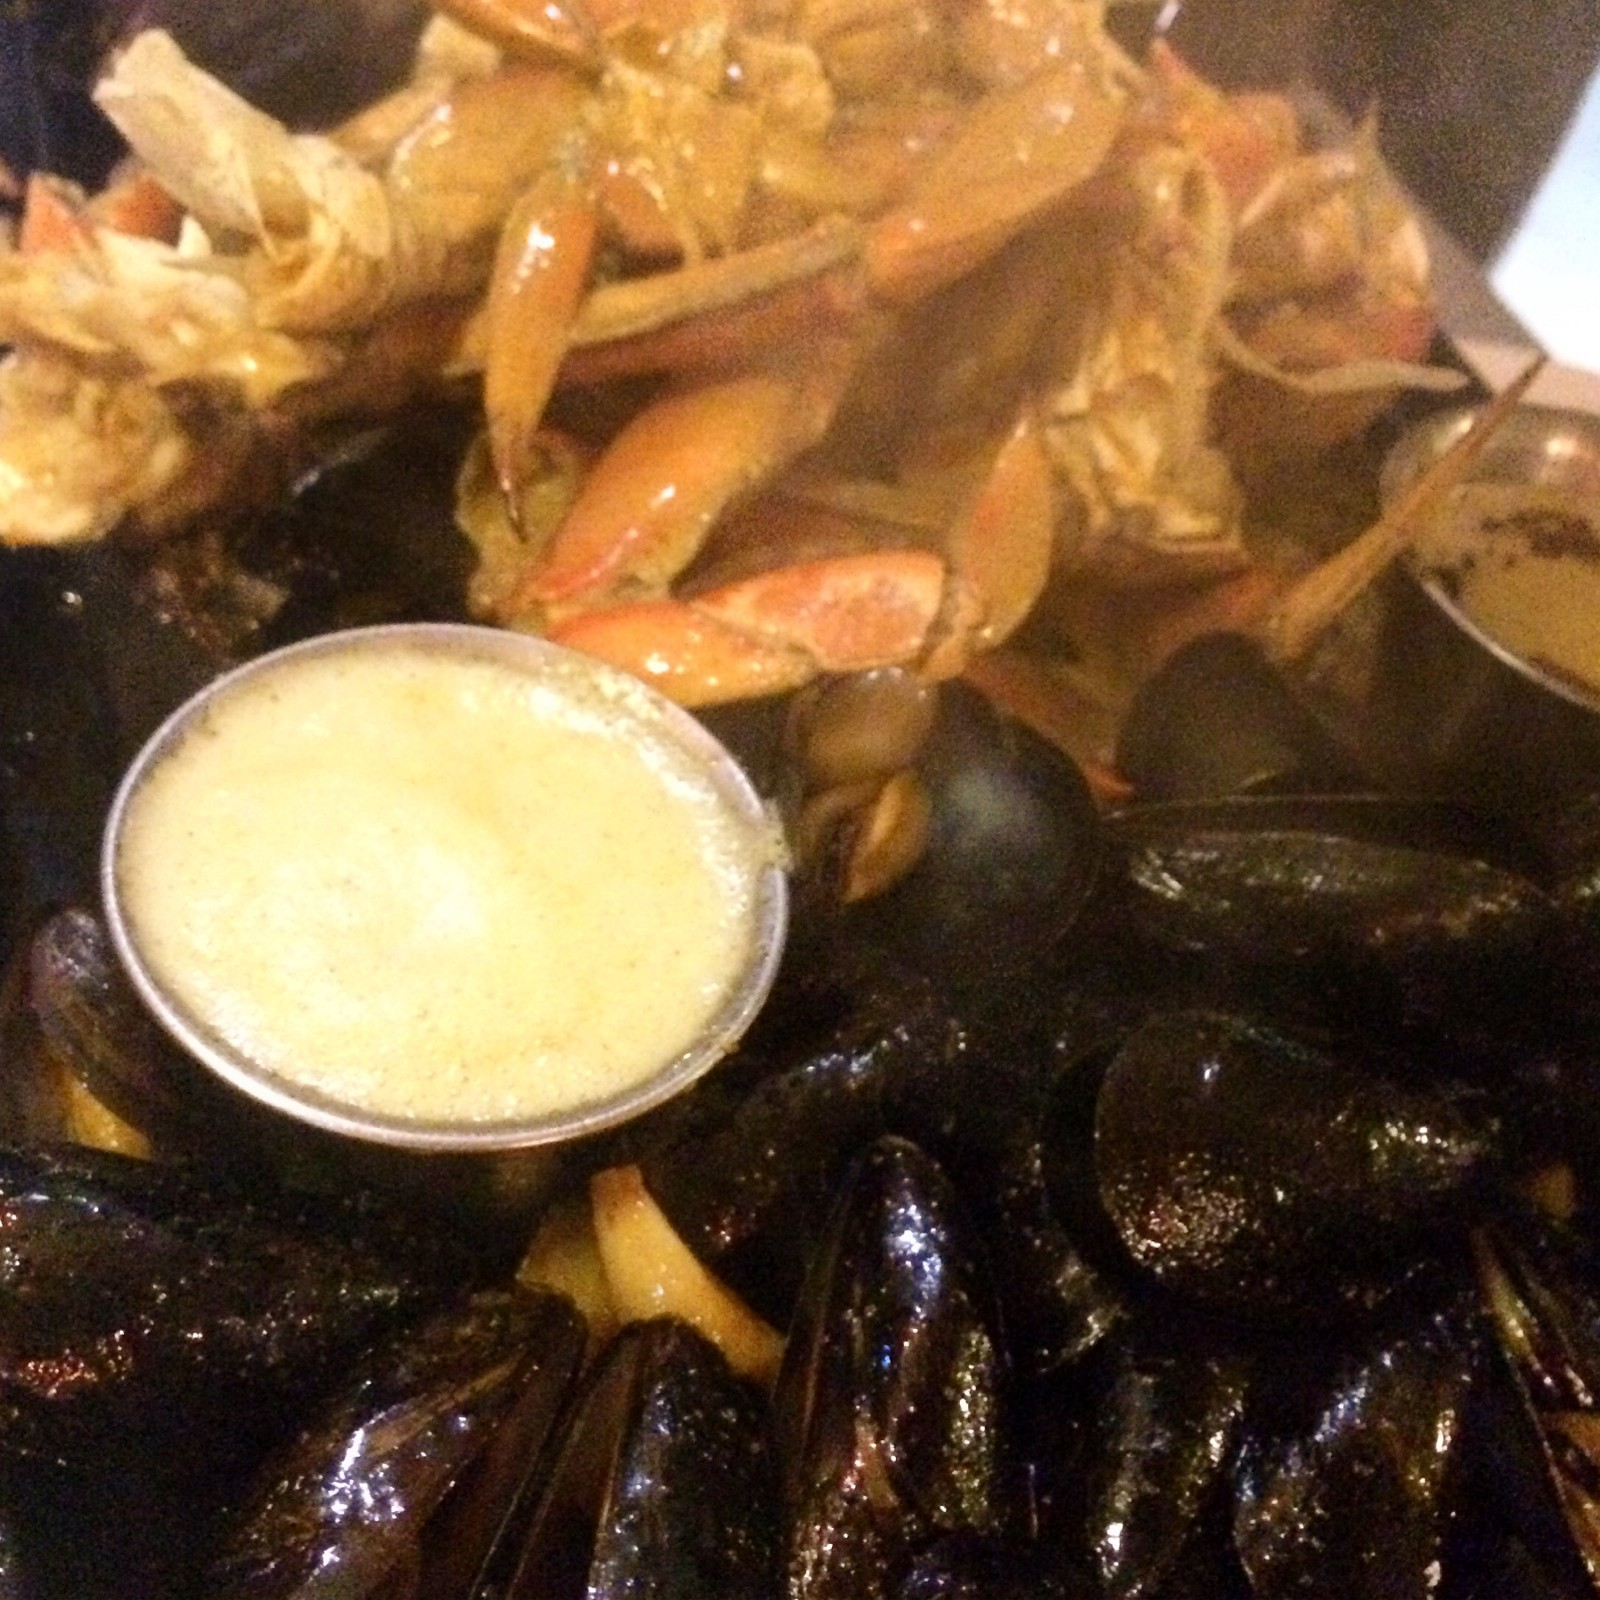 You can't go wrong with roasted mussels, crab, drawn butter and garlic sizzling over an iron skillet.